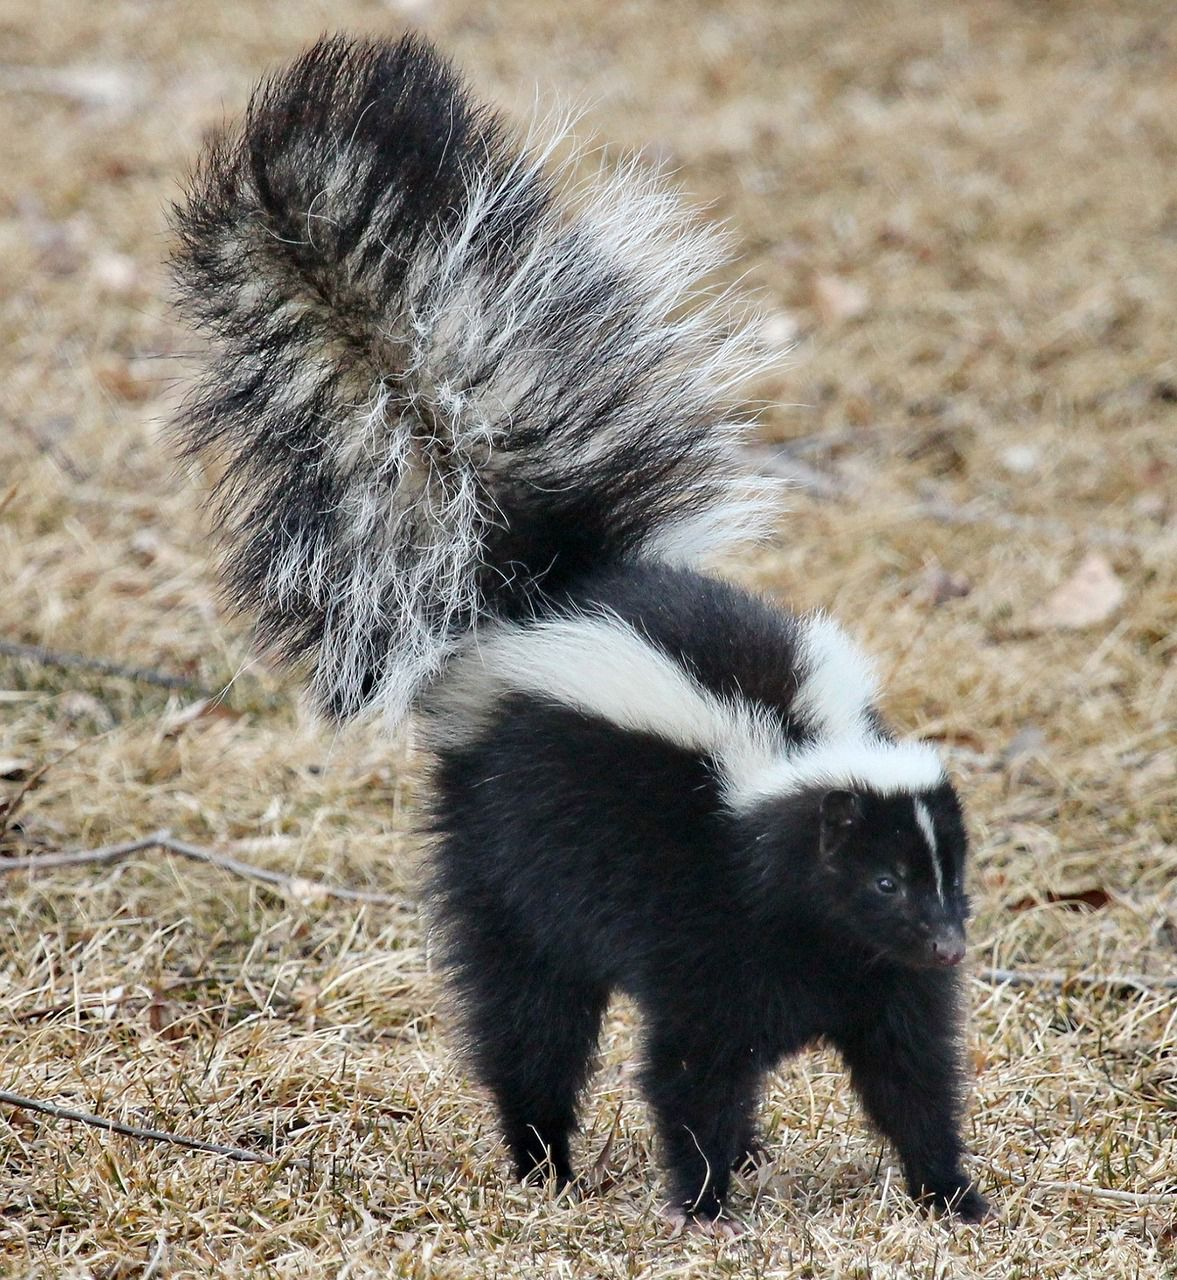 Skunk in action